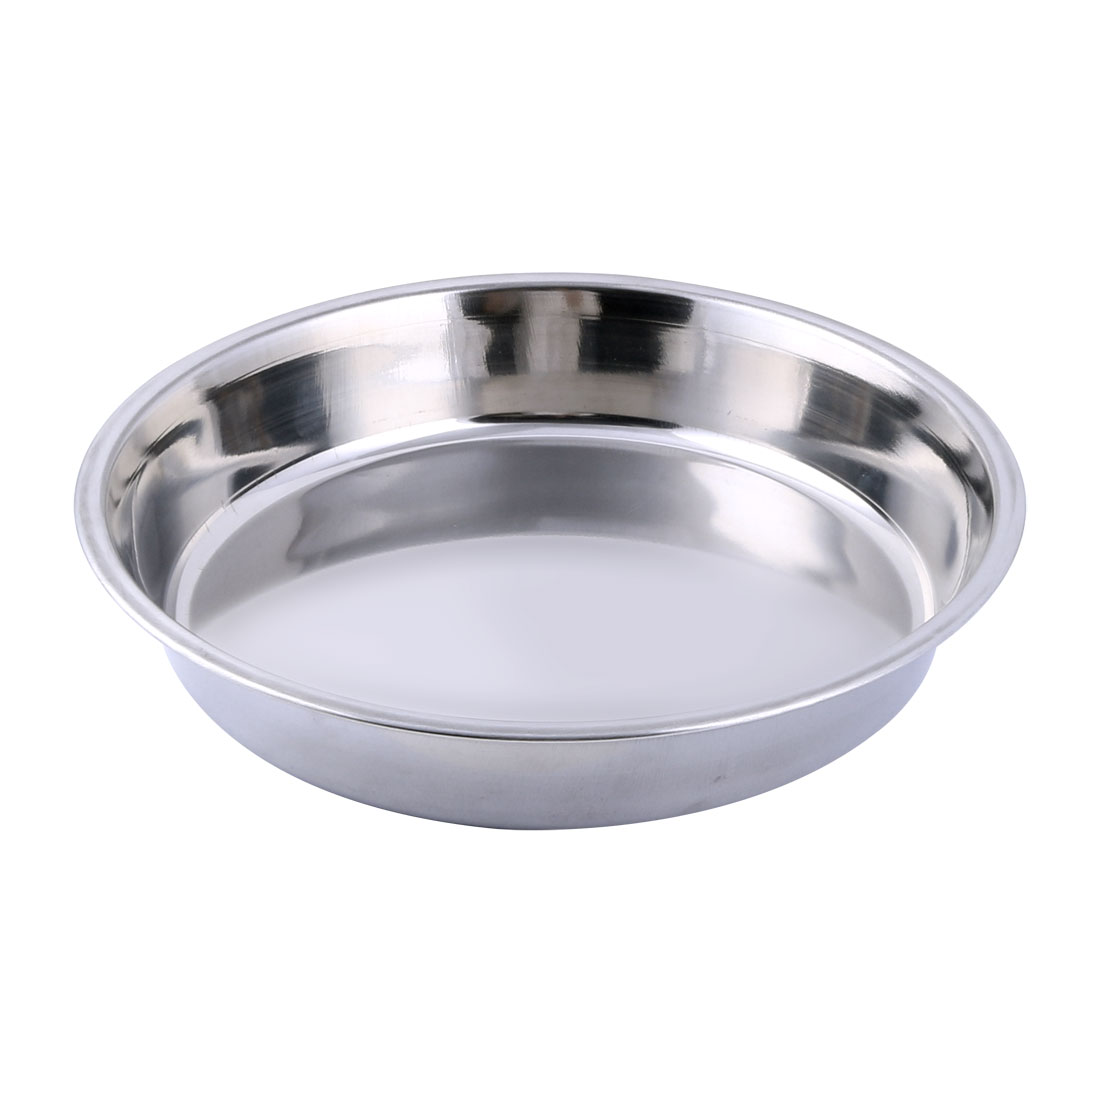 Home Restaurant Stainless Steel Food Fish Cooking Heating Steamer Pan Dish Silver Tone